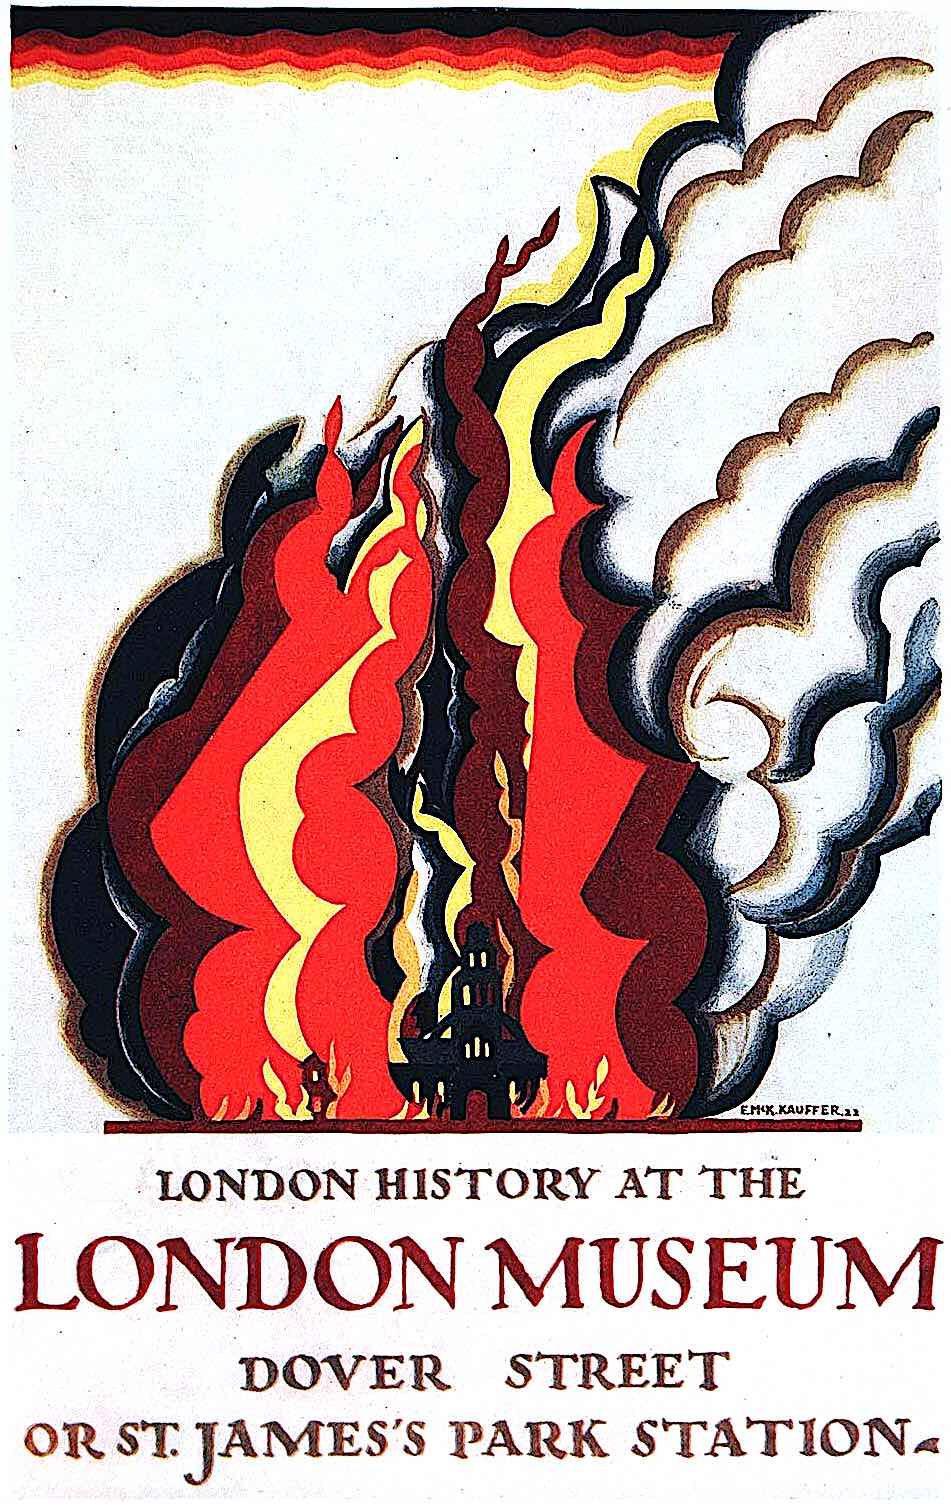 a poster for the London Museum by E. McKnight Kauffer